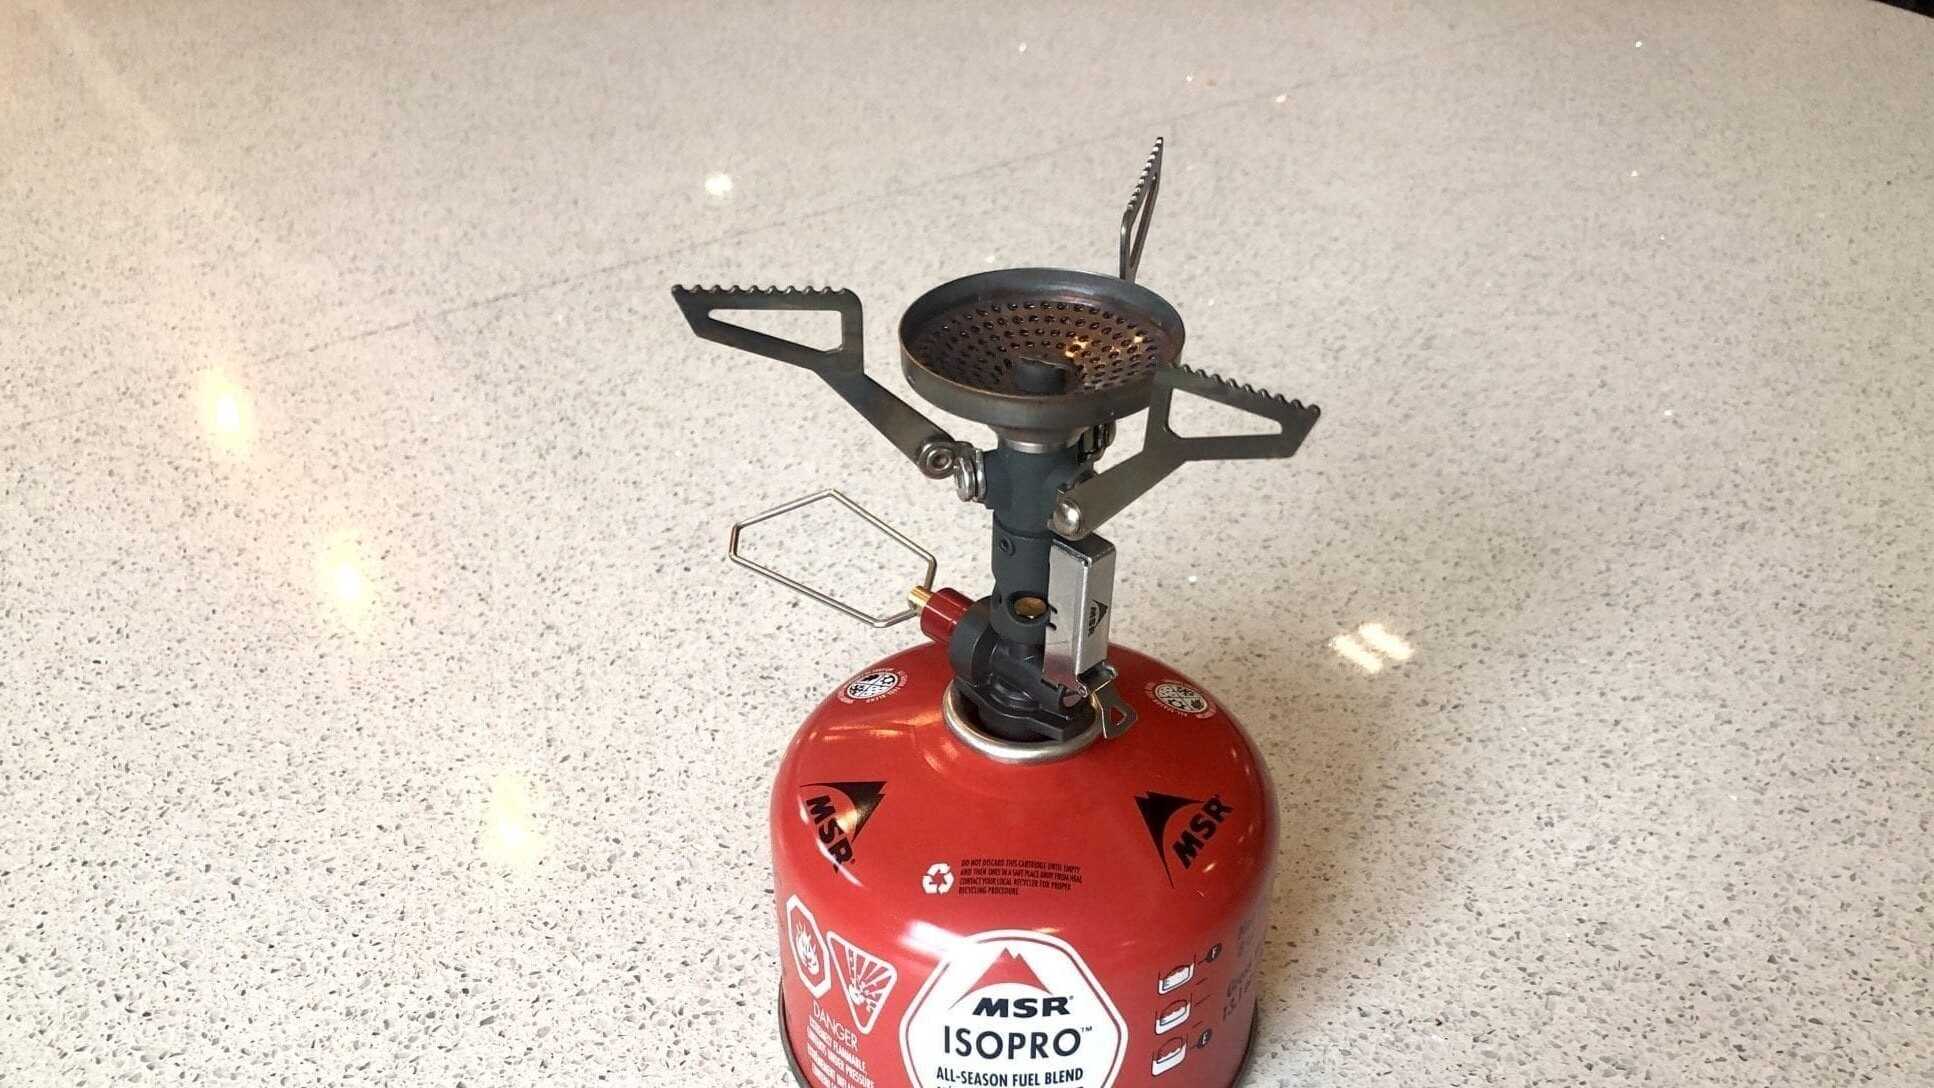 The MSR PocketRocket Stove attached to a fuel canister.